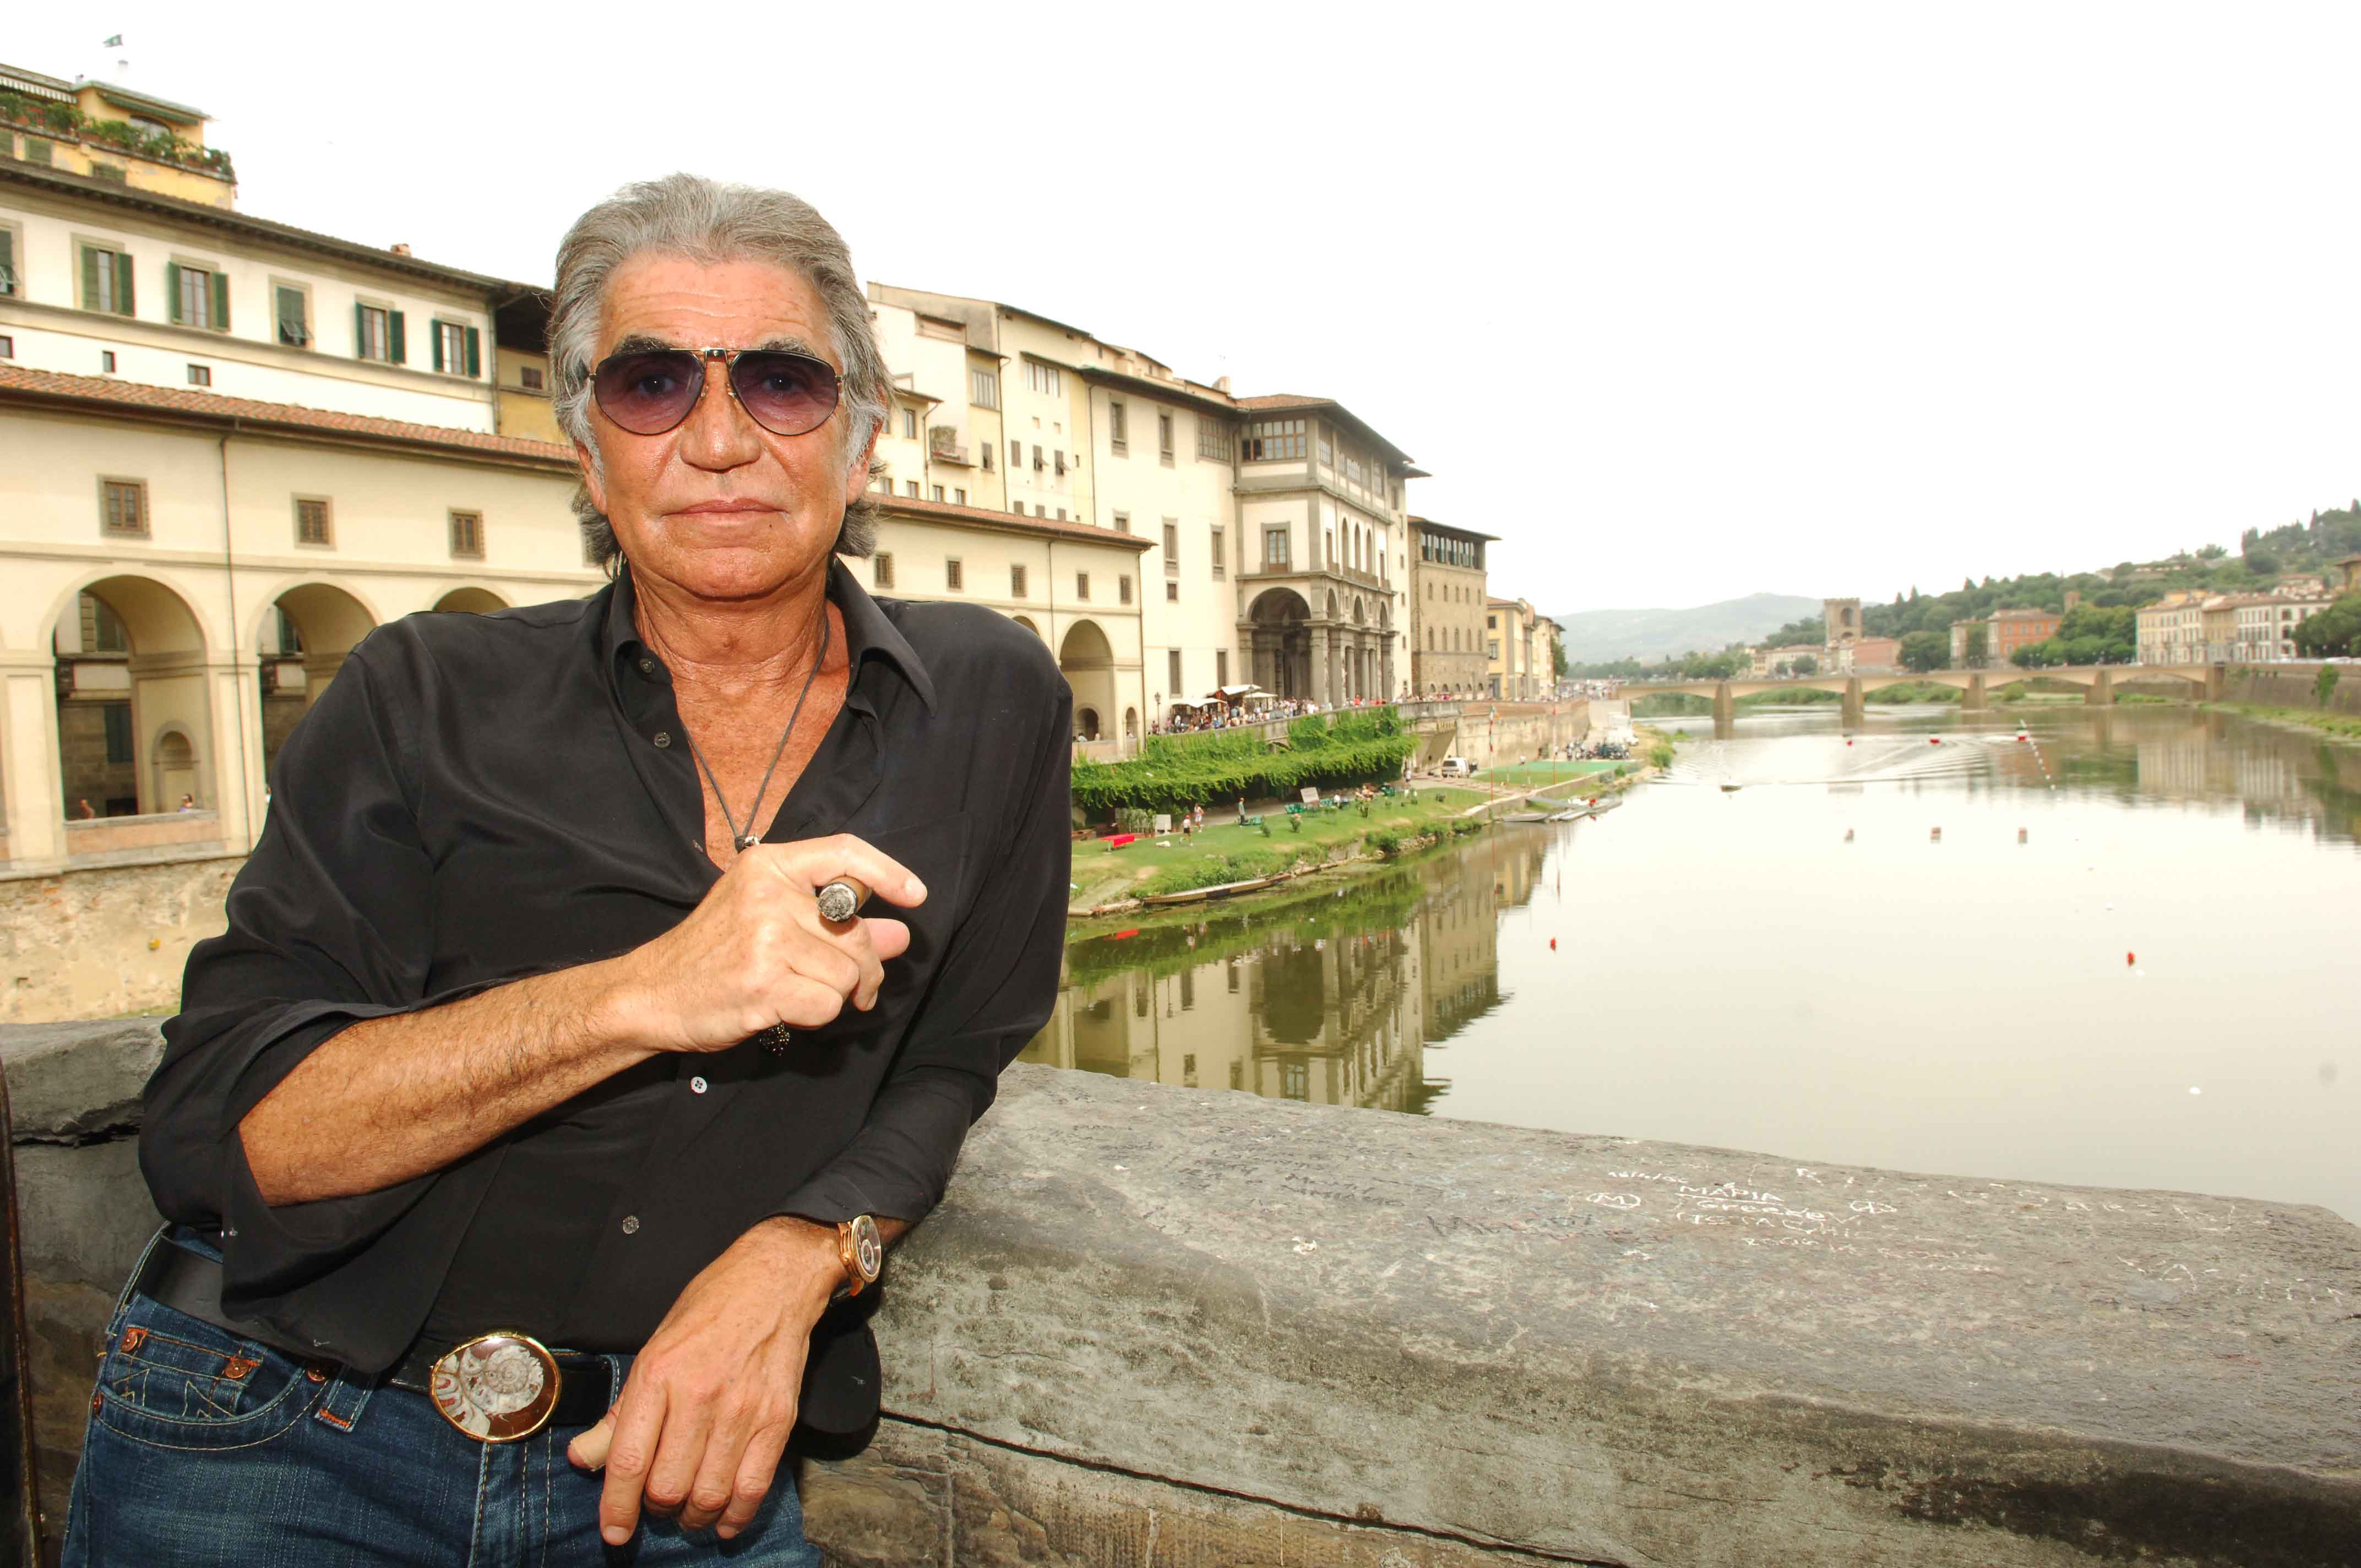 Fashion week Cavalli roberto company bought by clessidra for lady